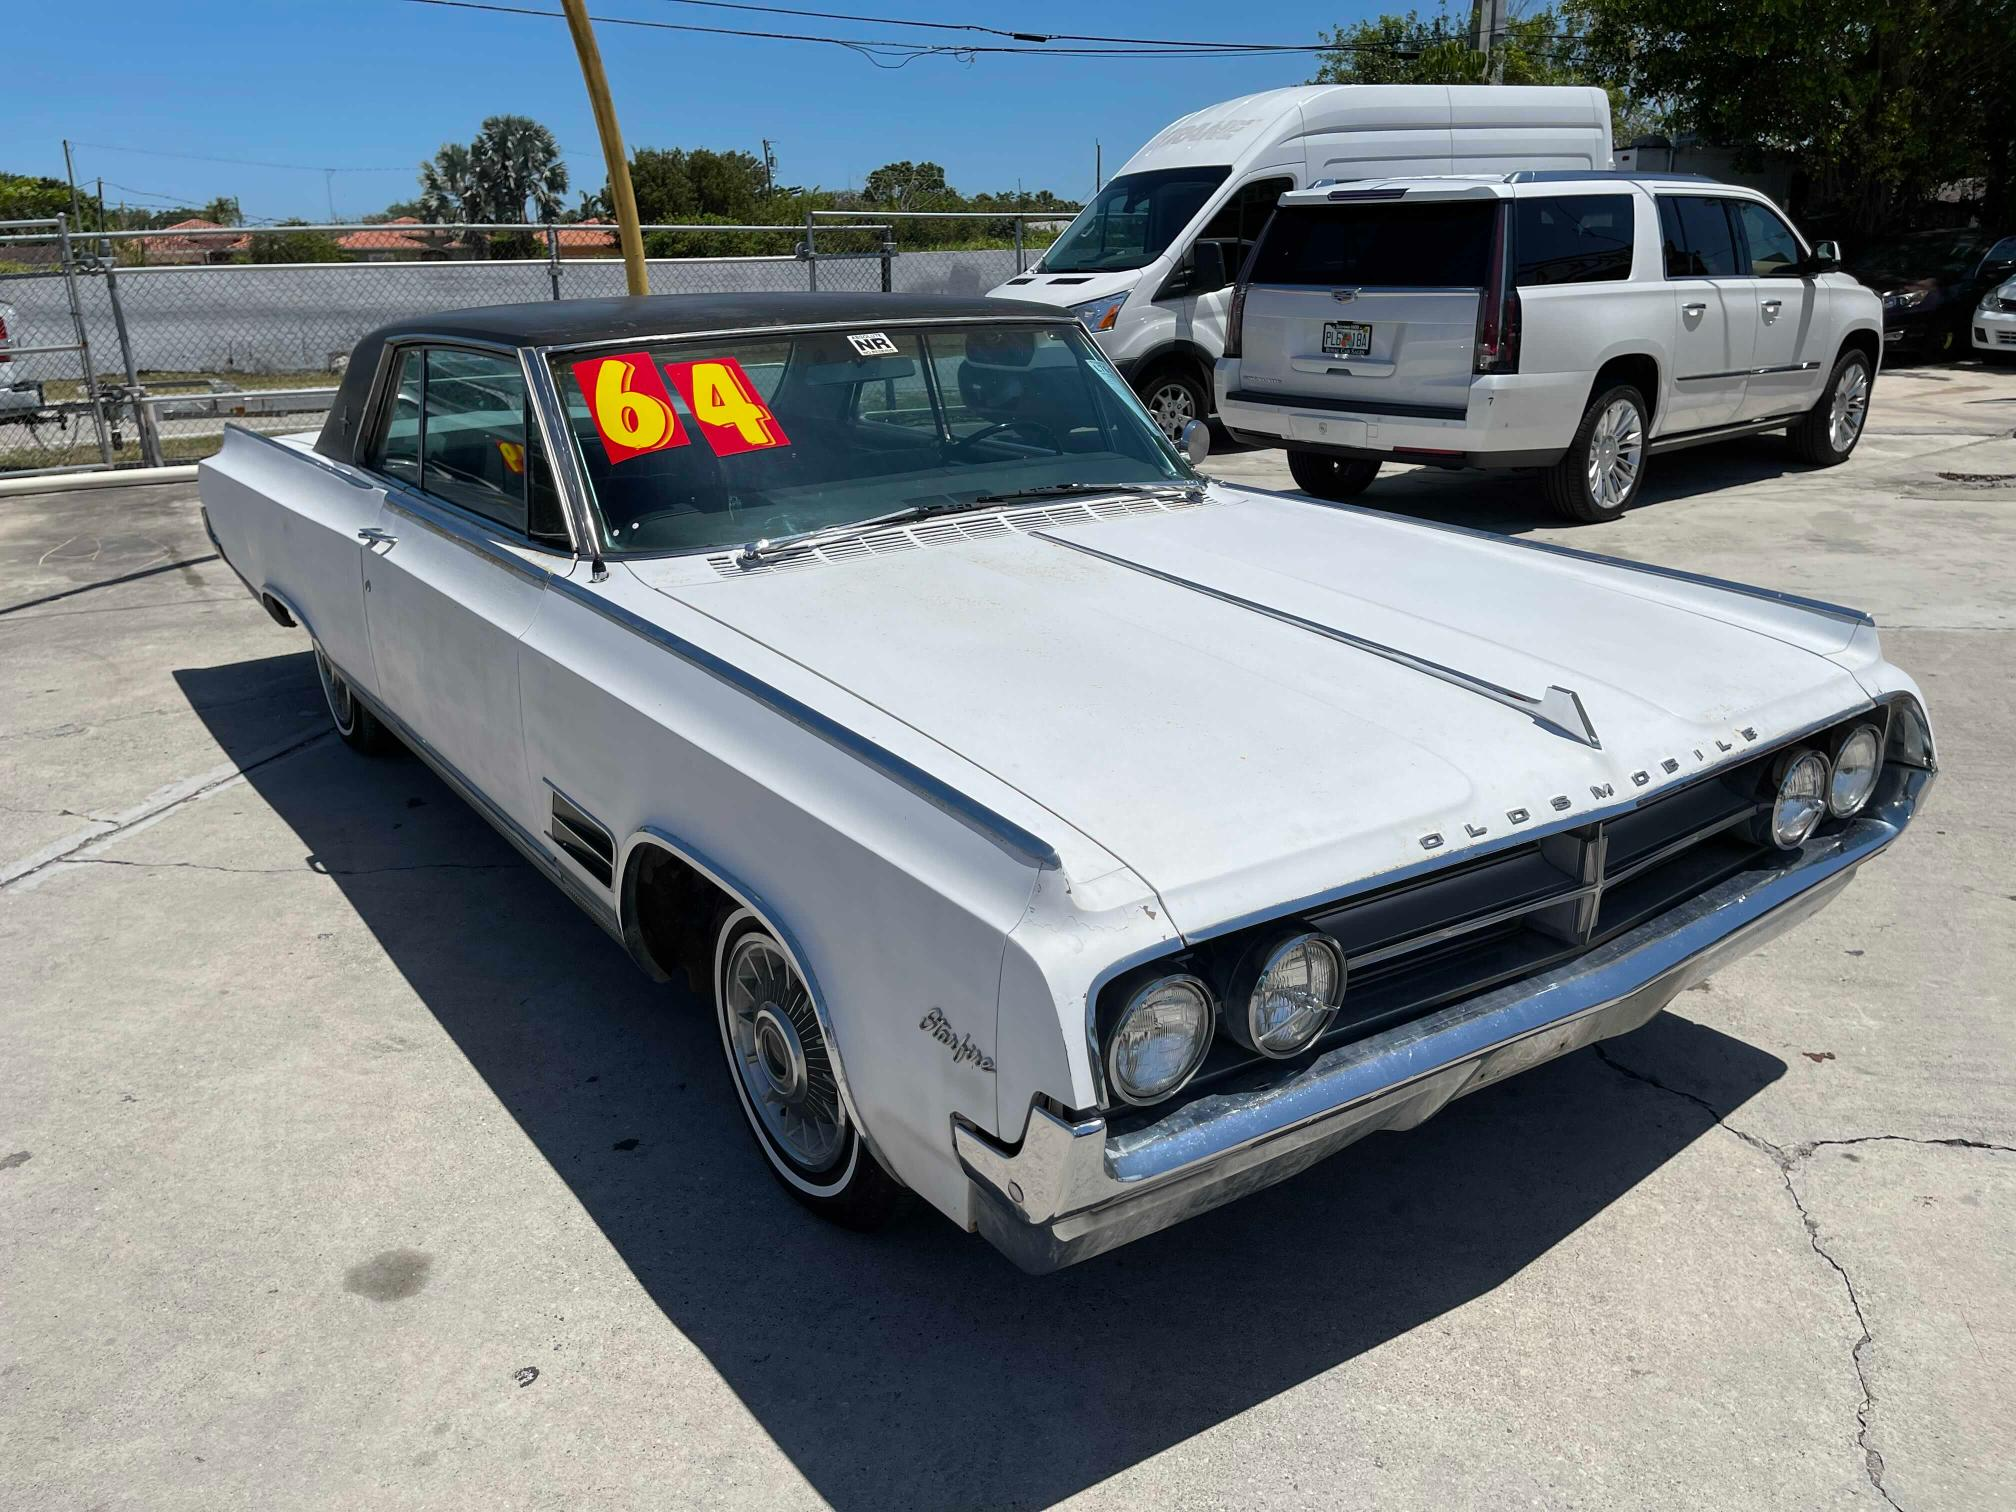 Oldsmobile salvage cars for sale: 1964 Oldsmobile Starfire